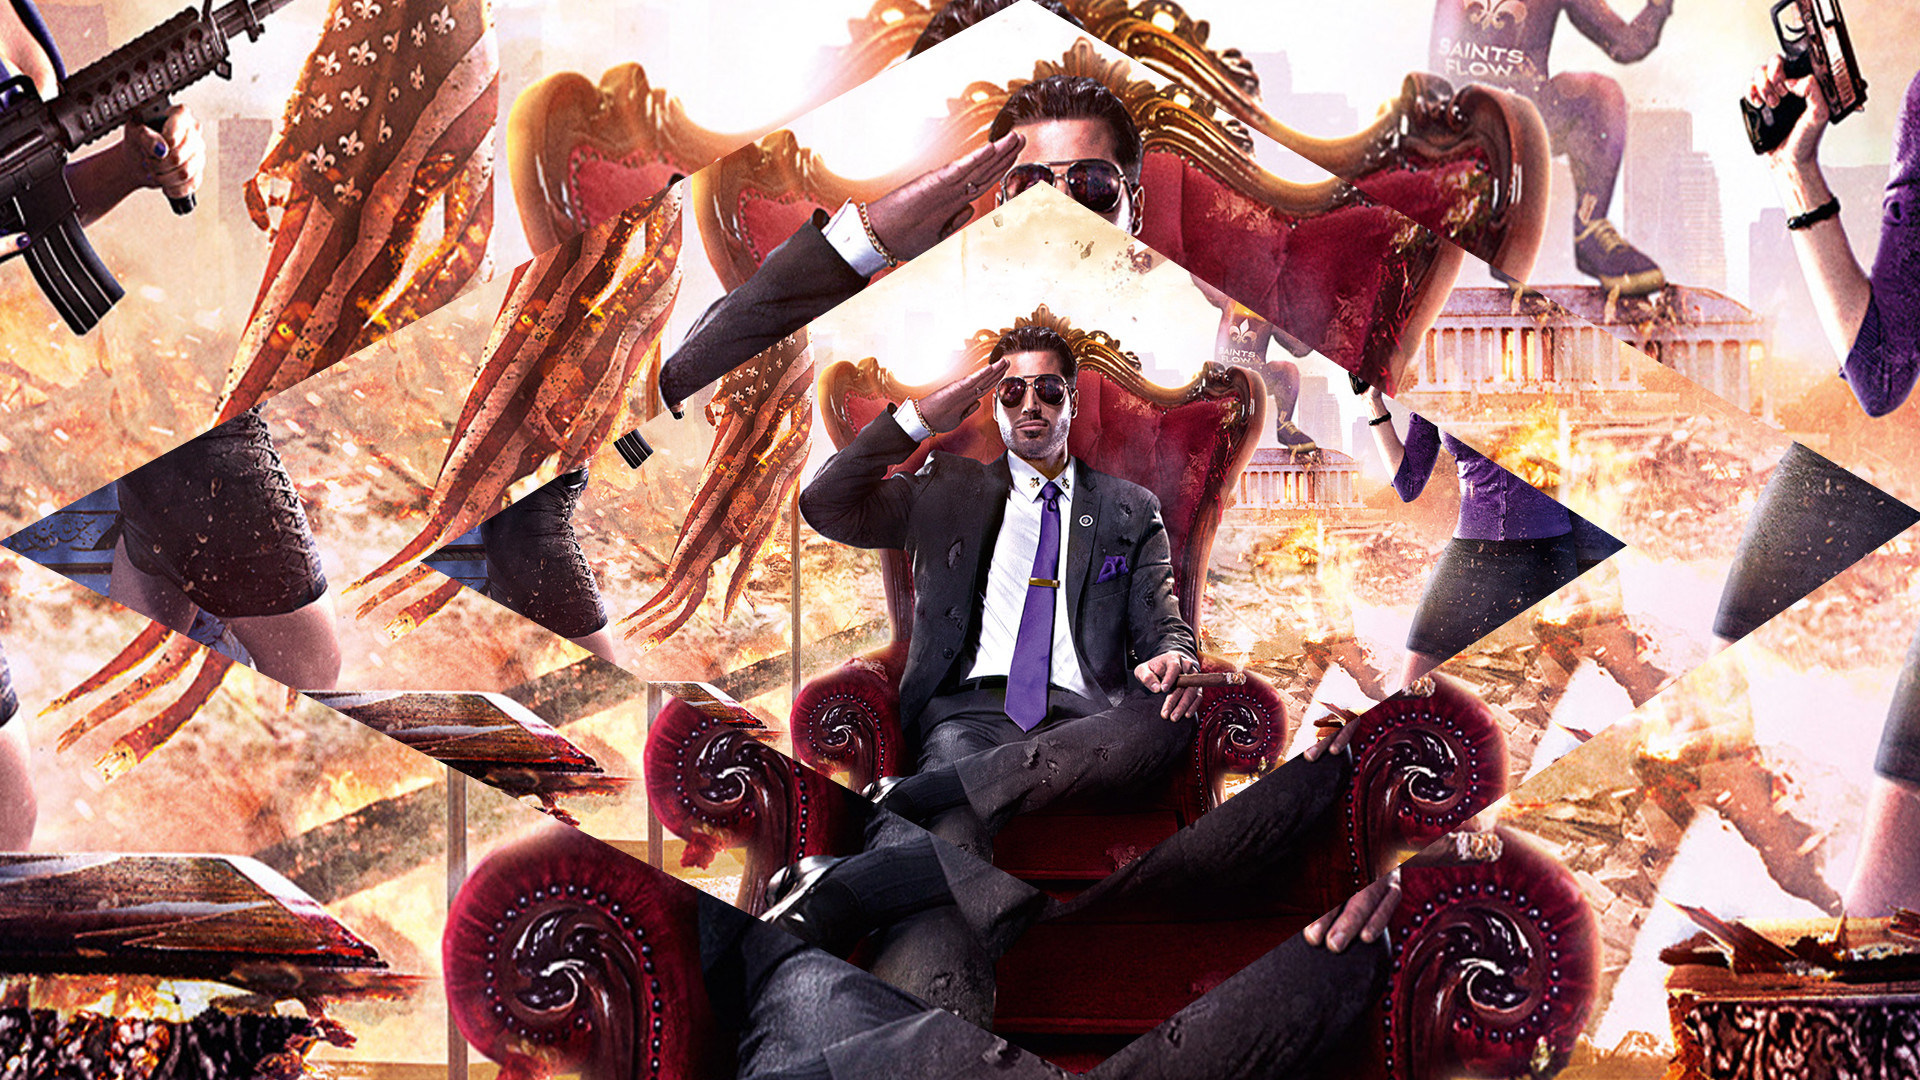 Saints Row 4 Wallpapers: Saints Row Wallpaper (70+ Images